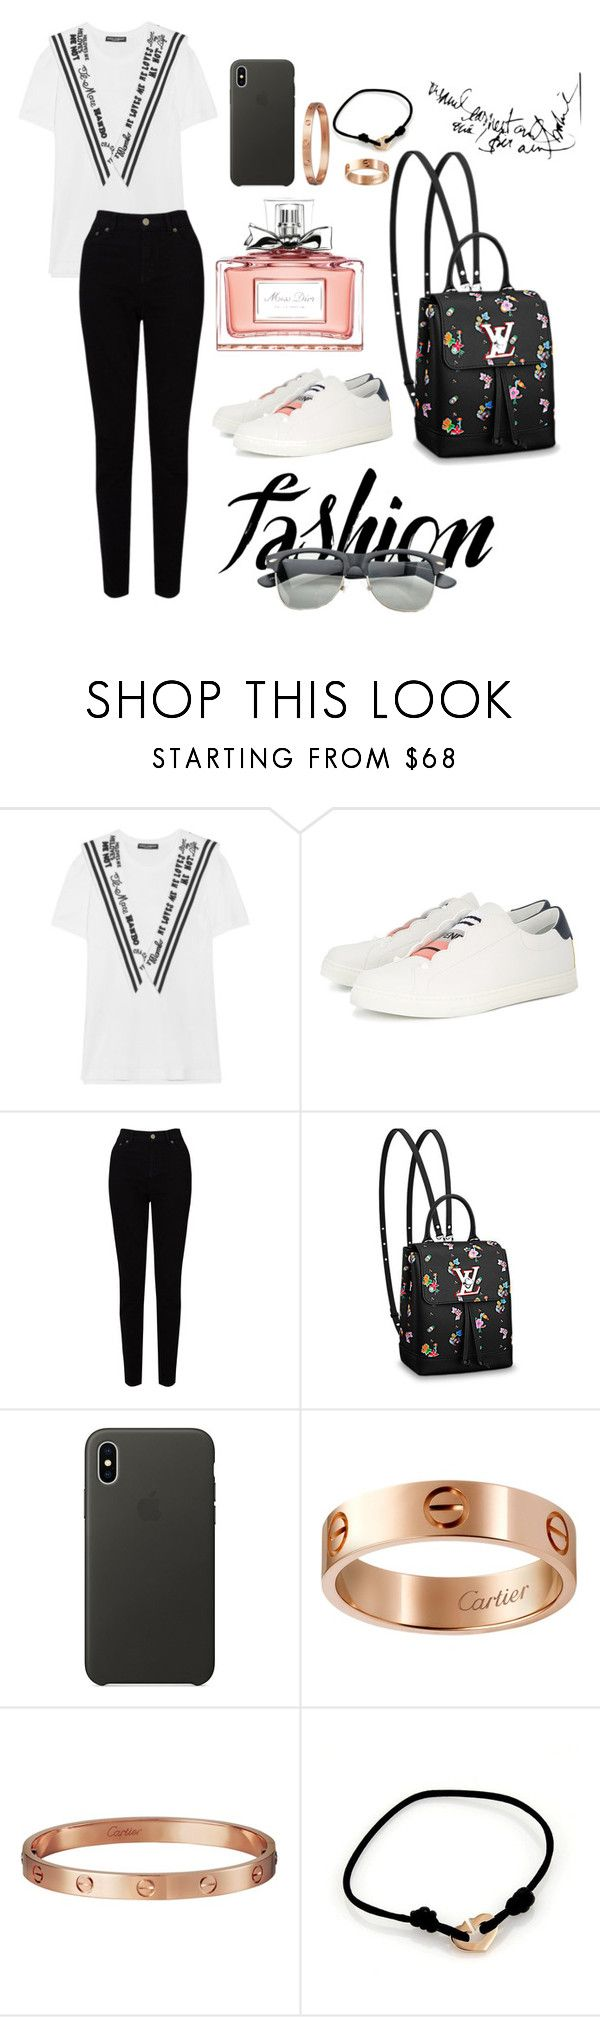 """Casual"" by pitaa29 on Polyvore featuring Dolce&Gabbana, Fendi, EAST, Apple, Cartier and Christian Dior"